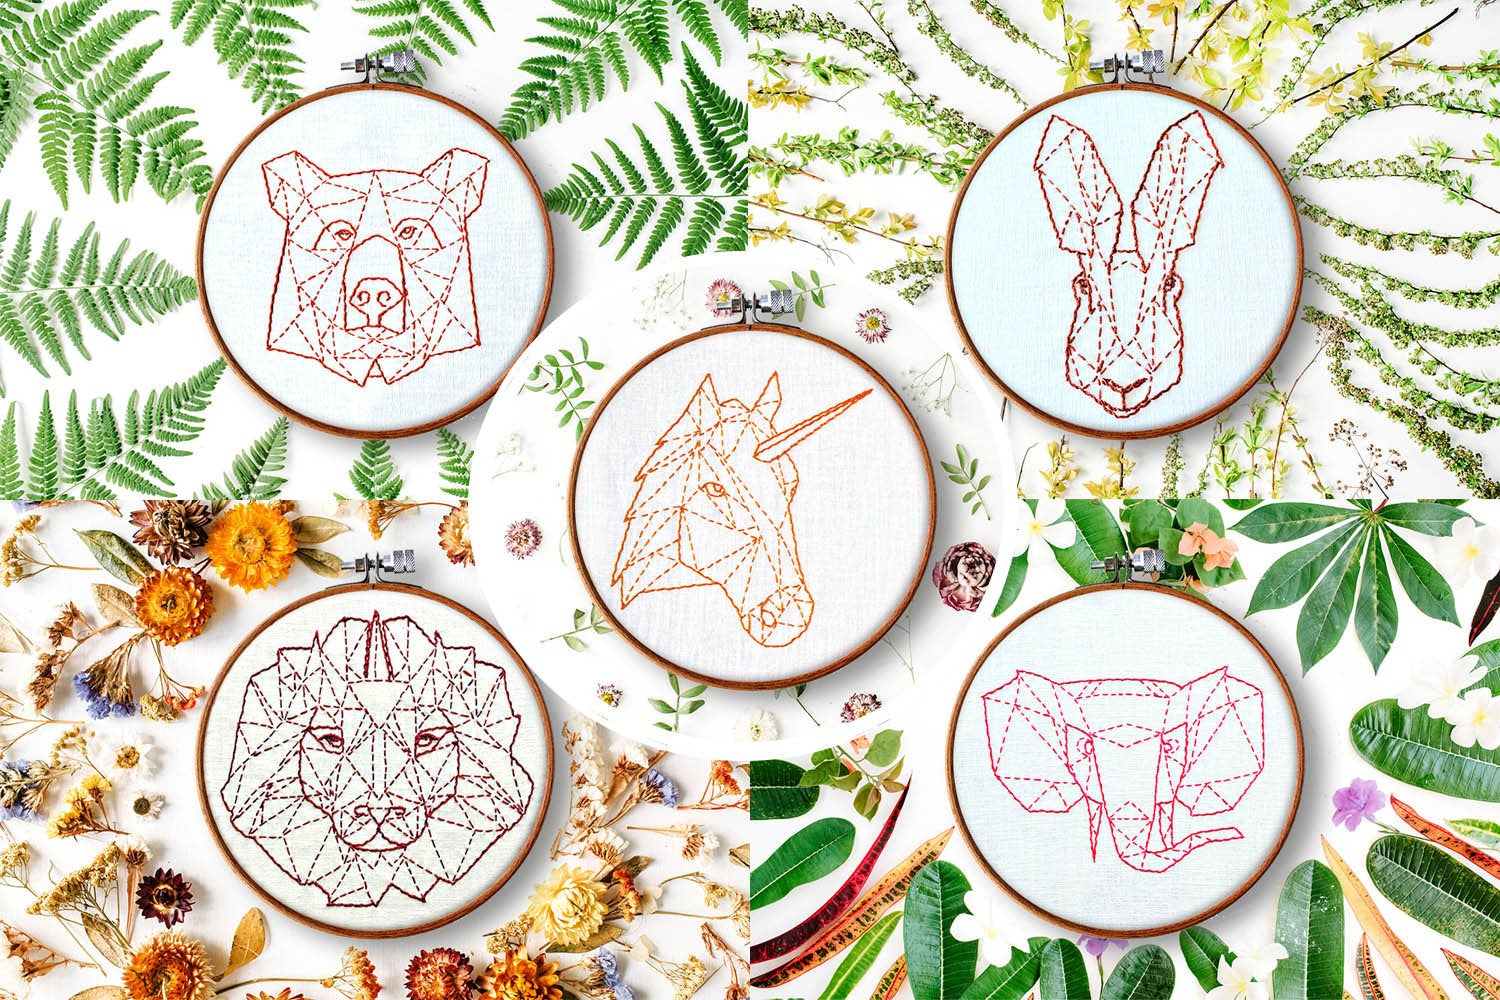 How To Make Hand Embroidery Patterns Modern Hand Embroidery Patterns Geometric Animals Beginner Embroidery Embroidery Ideas Contemporary Embroidery Rustic Home Decor